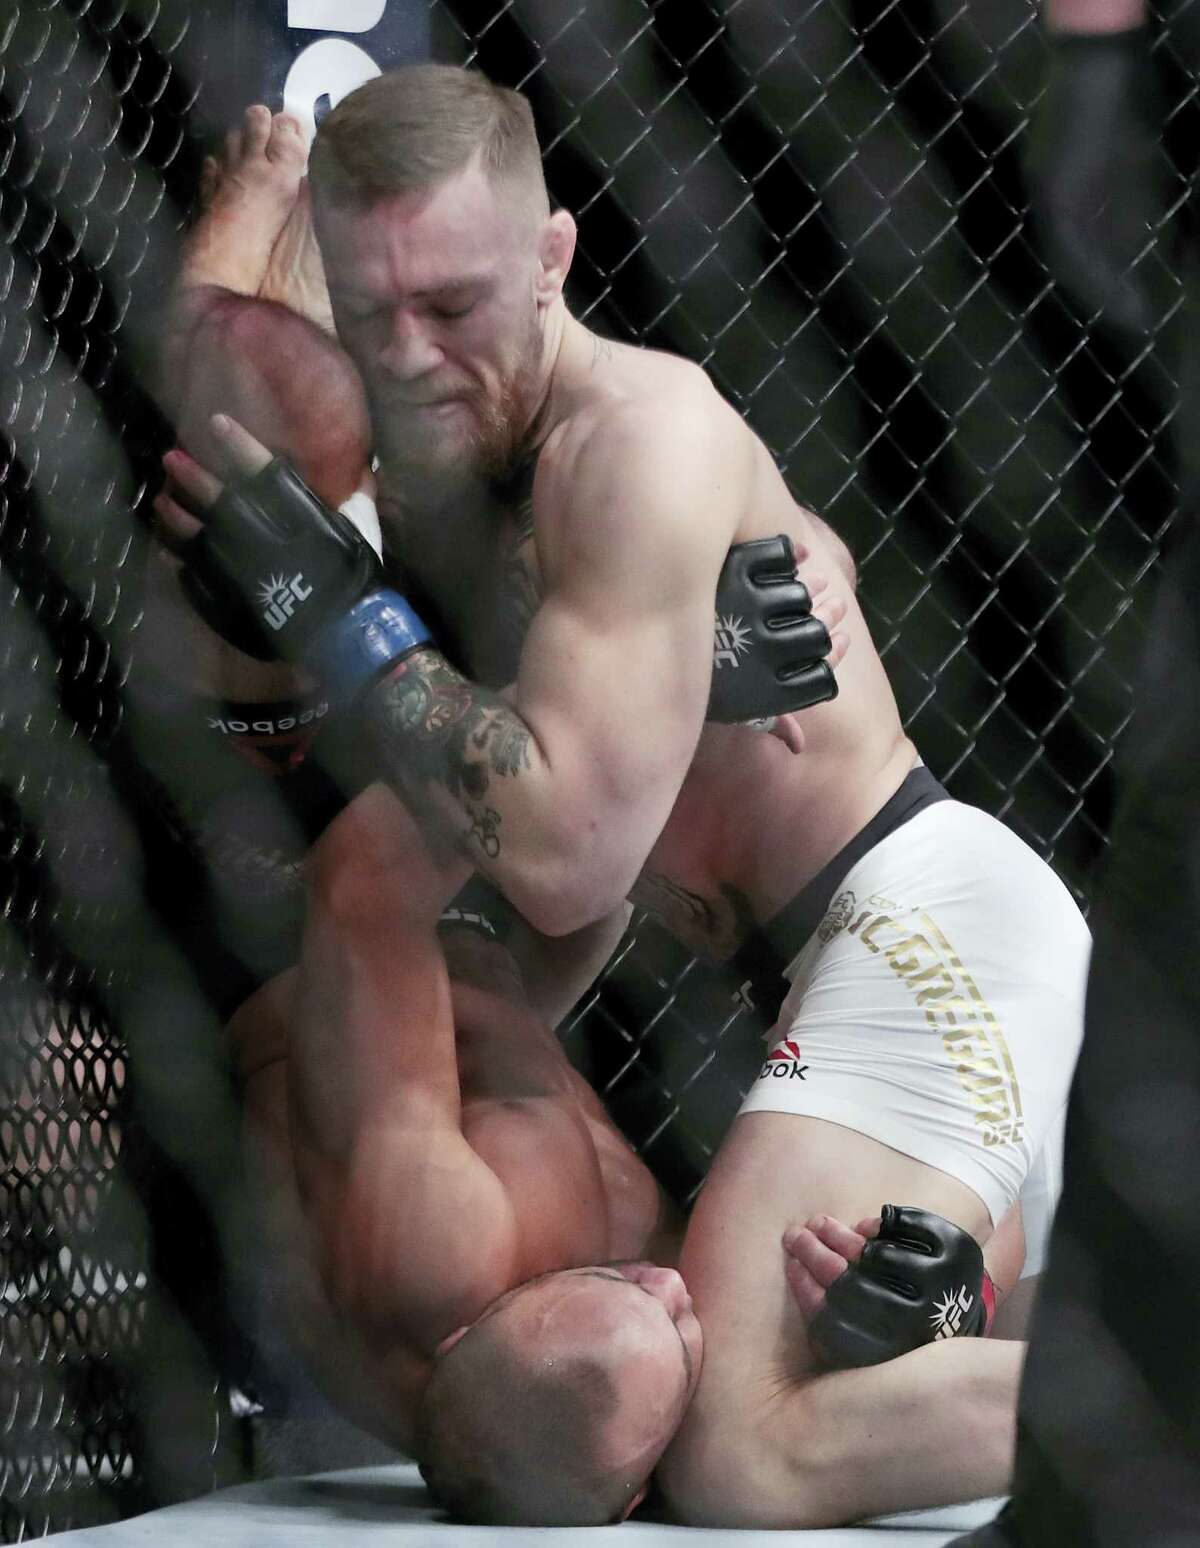 Conor McGregor, right, fights Eddie Alvarez during a lightweight title mixed martial arts bout at UFC 205 early Sunday, Nov. 13, 2016 at Madison Square Garden in New York.